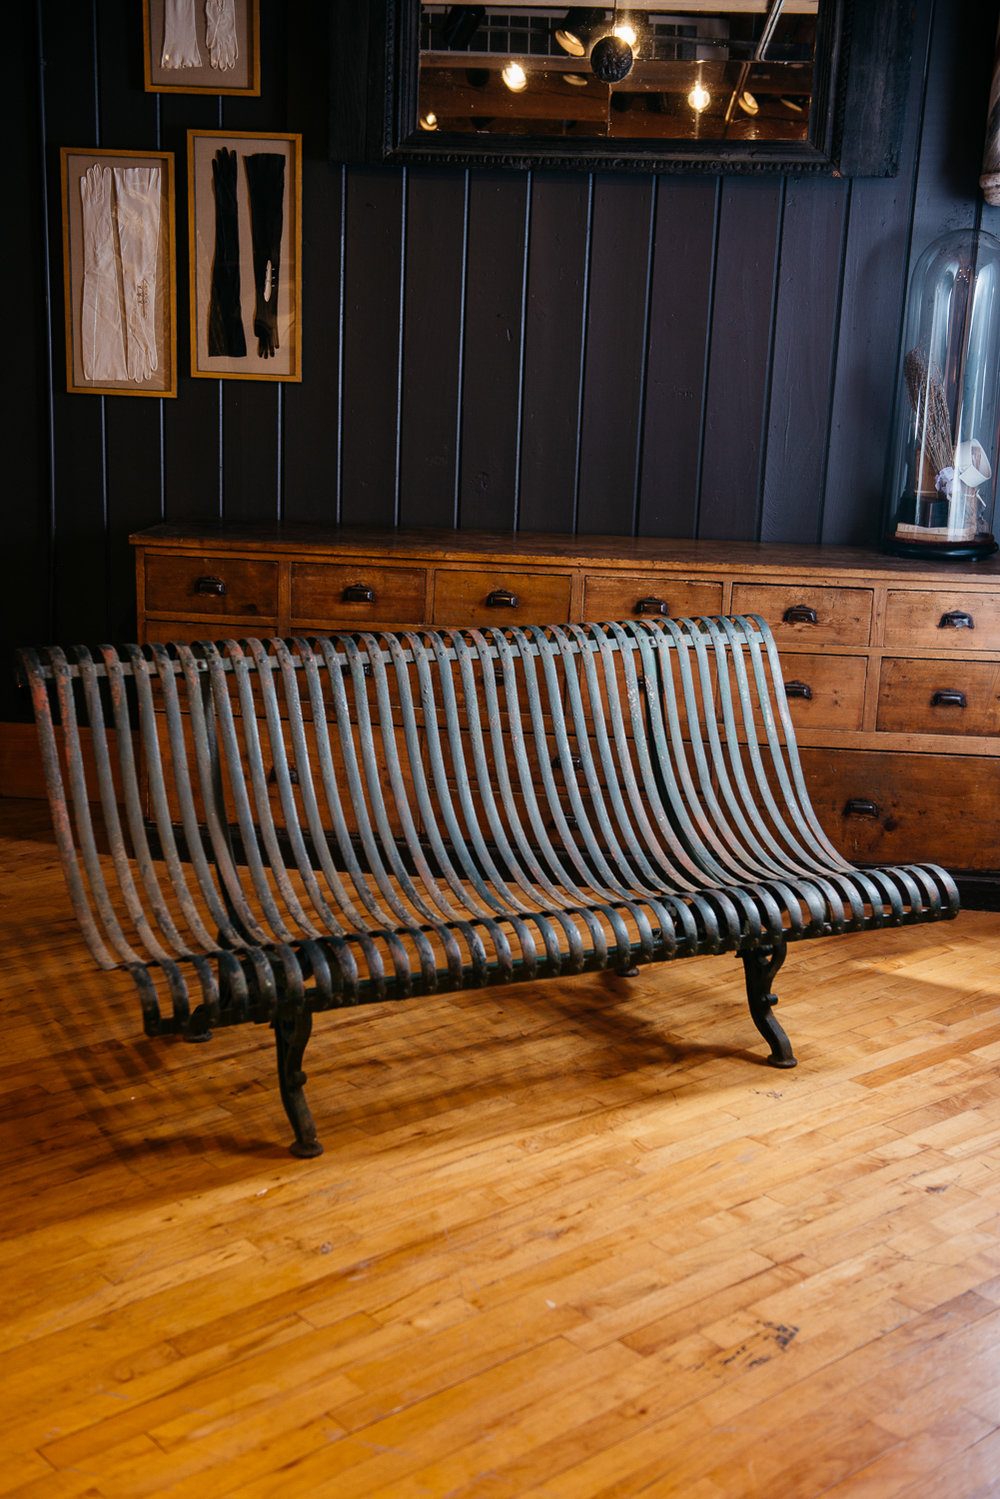 Paris Iron Garden Bench, cast and wrought iron, late 1800's. Photo credit:  Louis and Lavender